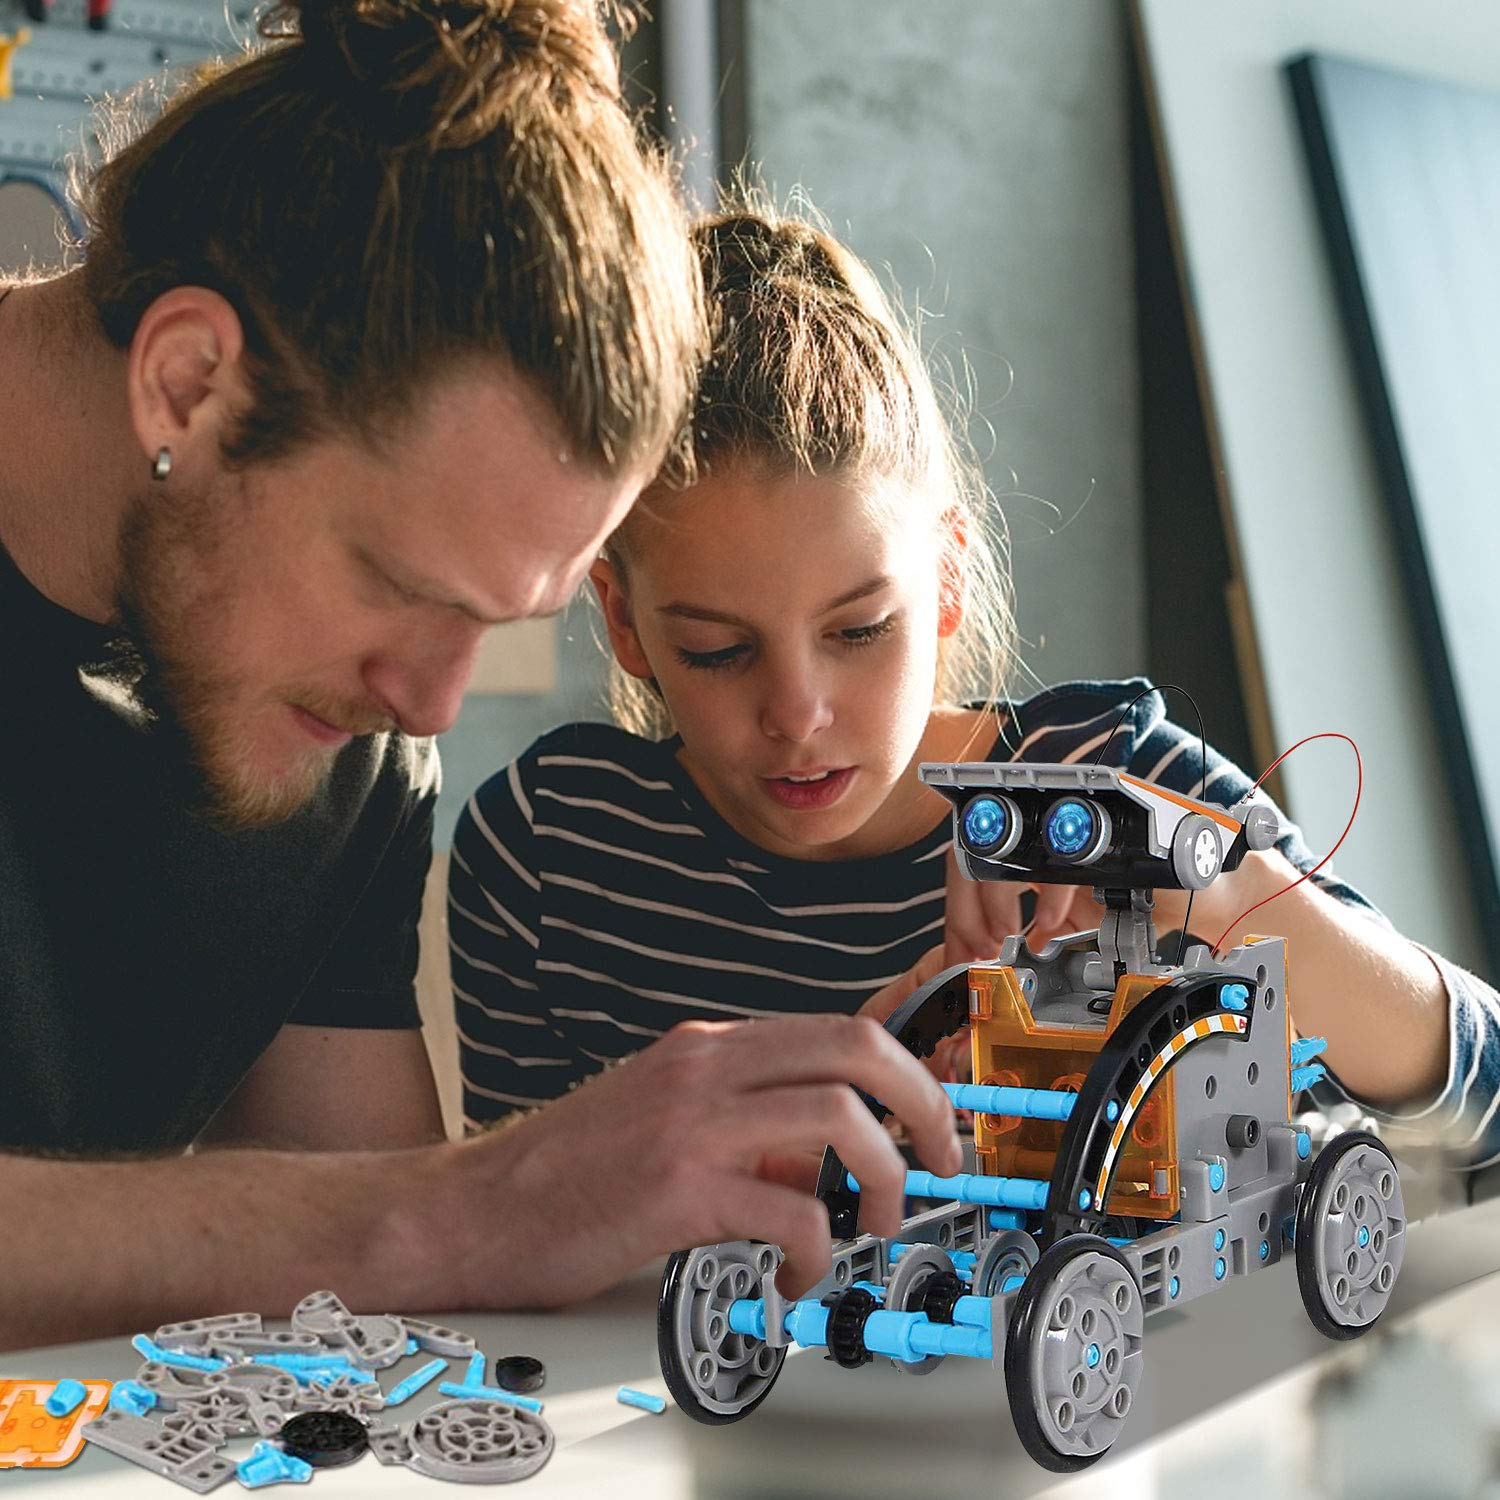 HOMOFY STEM Toys Solar Robot Kit 12-in-1 Educational Science Kits Toys Learning Science Building Toys-Powered by Solar STEM Toys Robot Science Kits for Kids 8 9 10-12 Year Olds Boys Girls Gifts